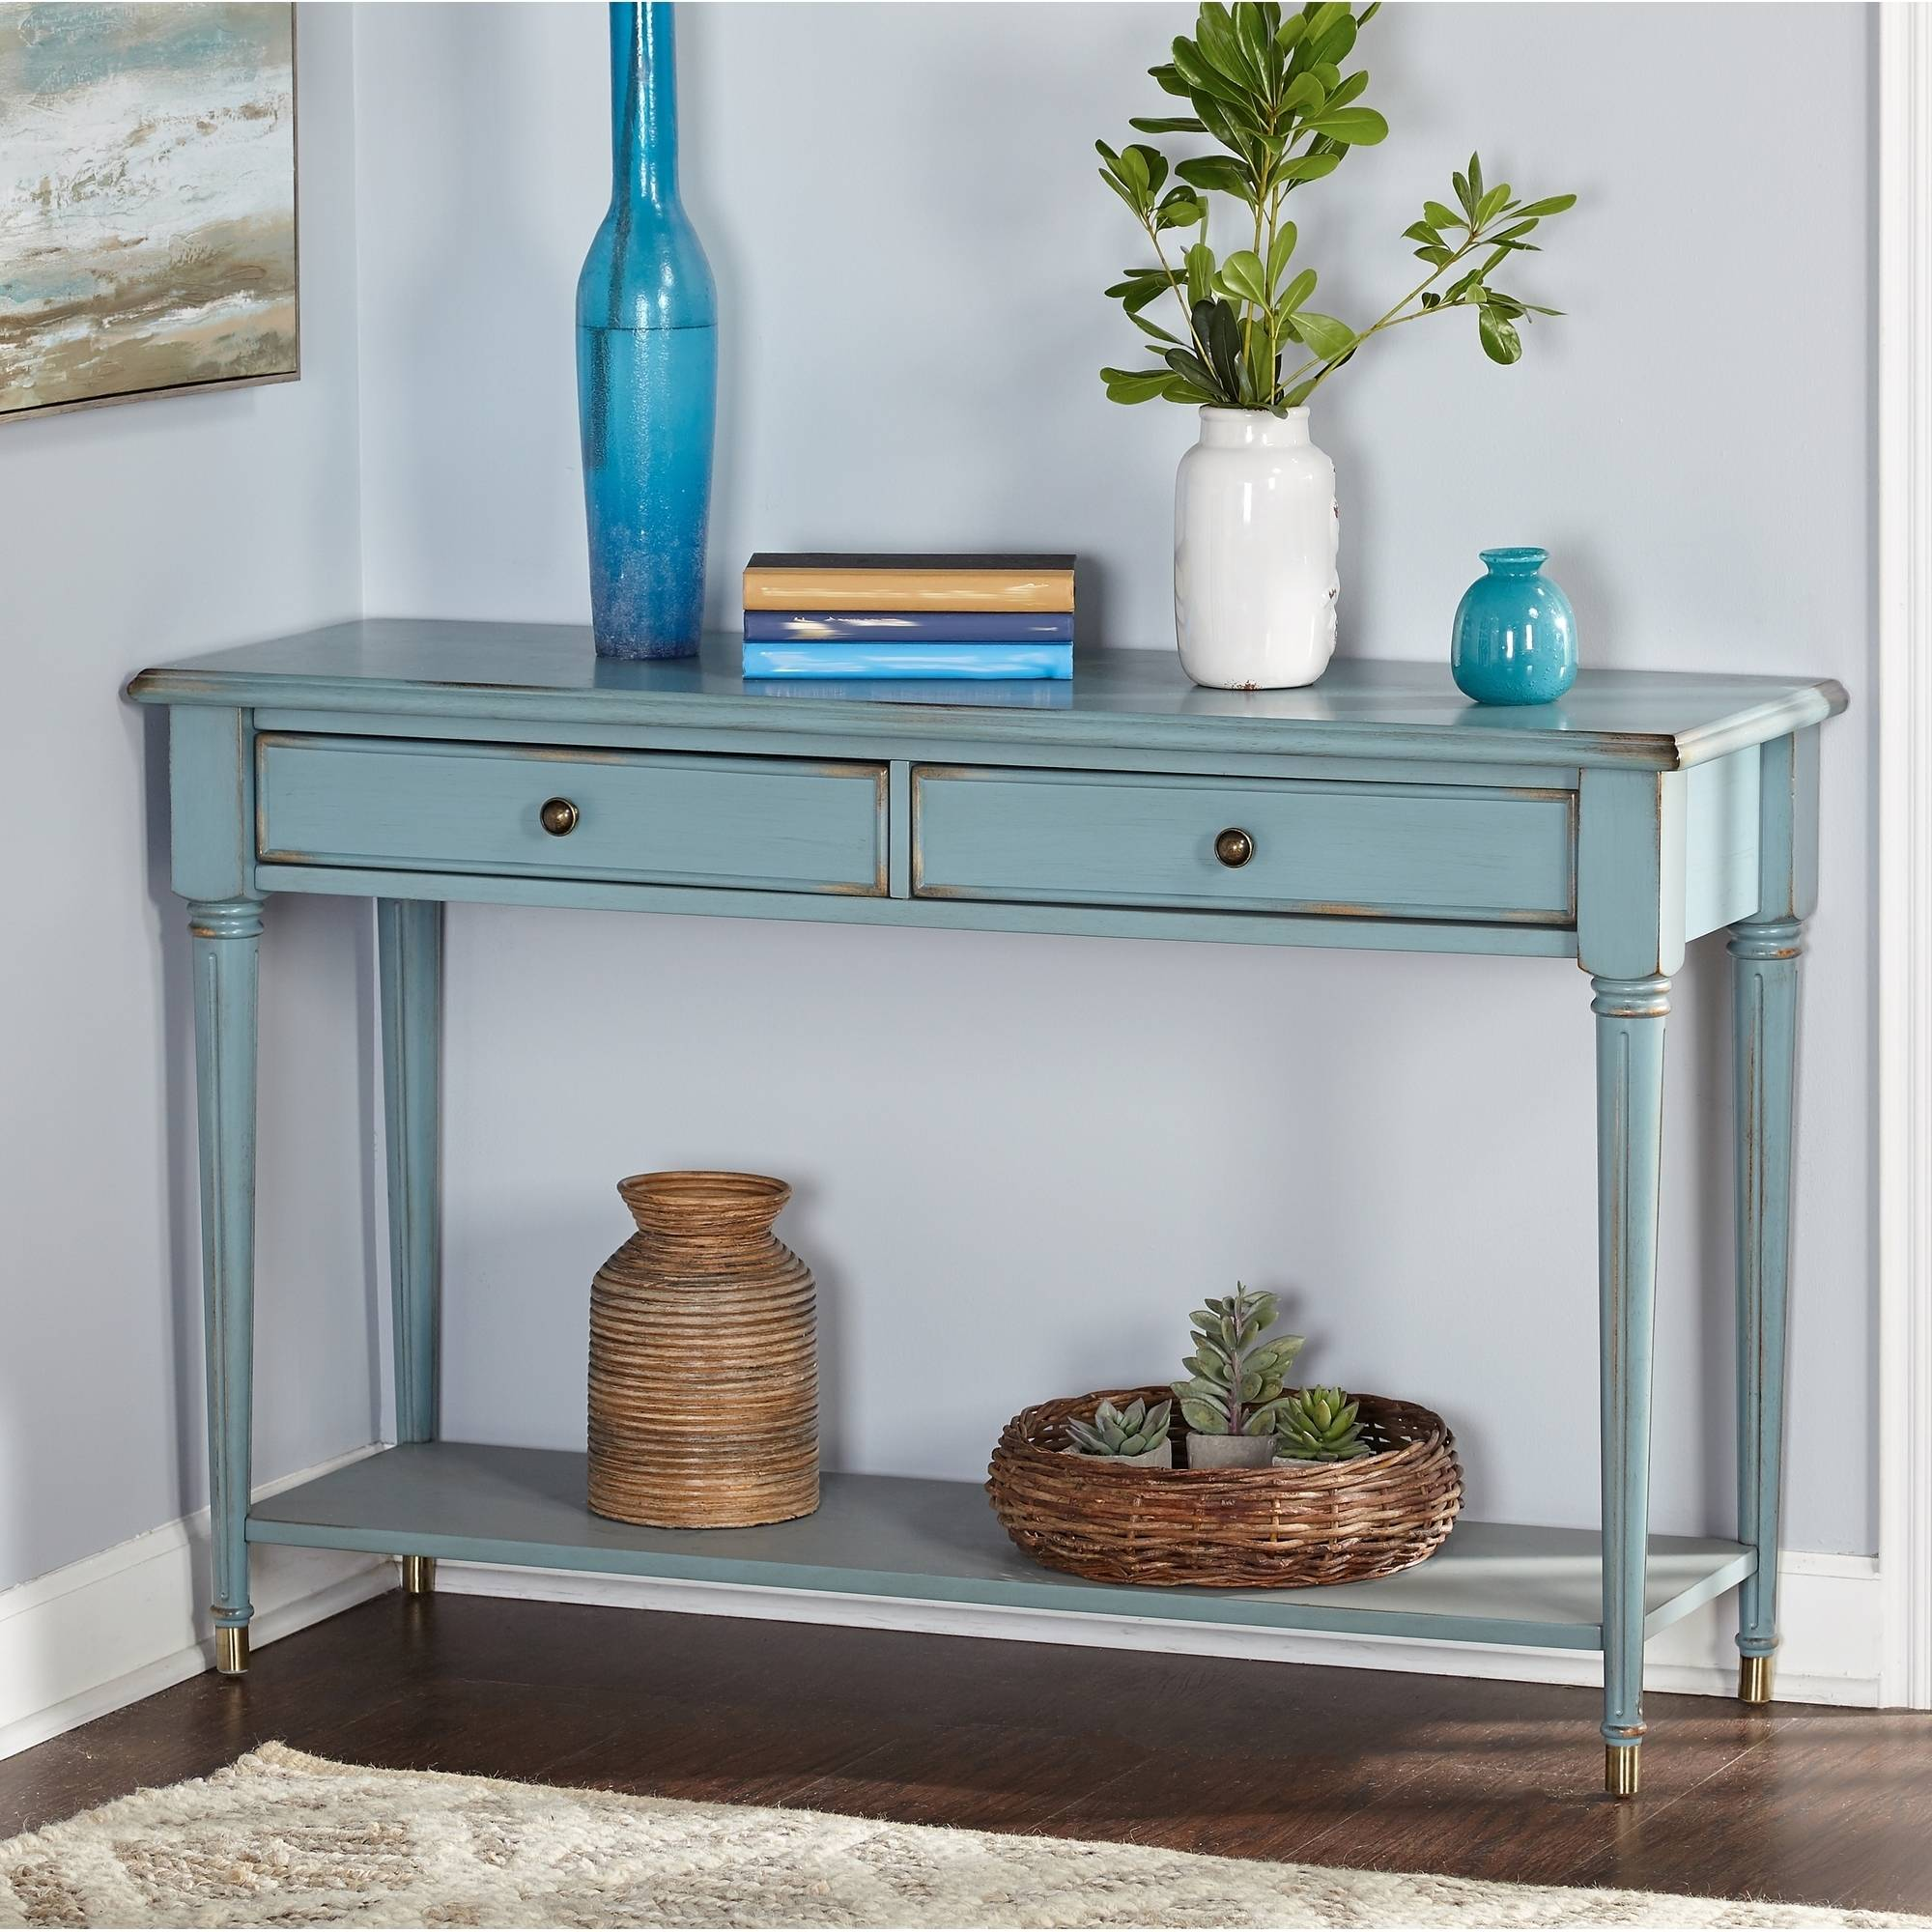 Emilia Sofa Table by Overstock